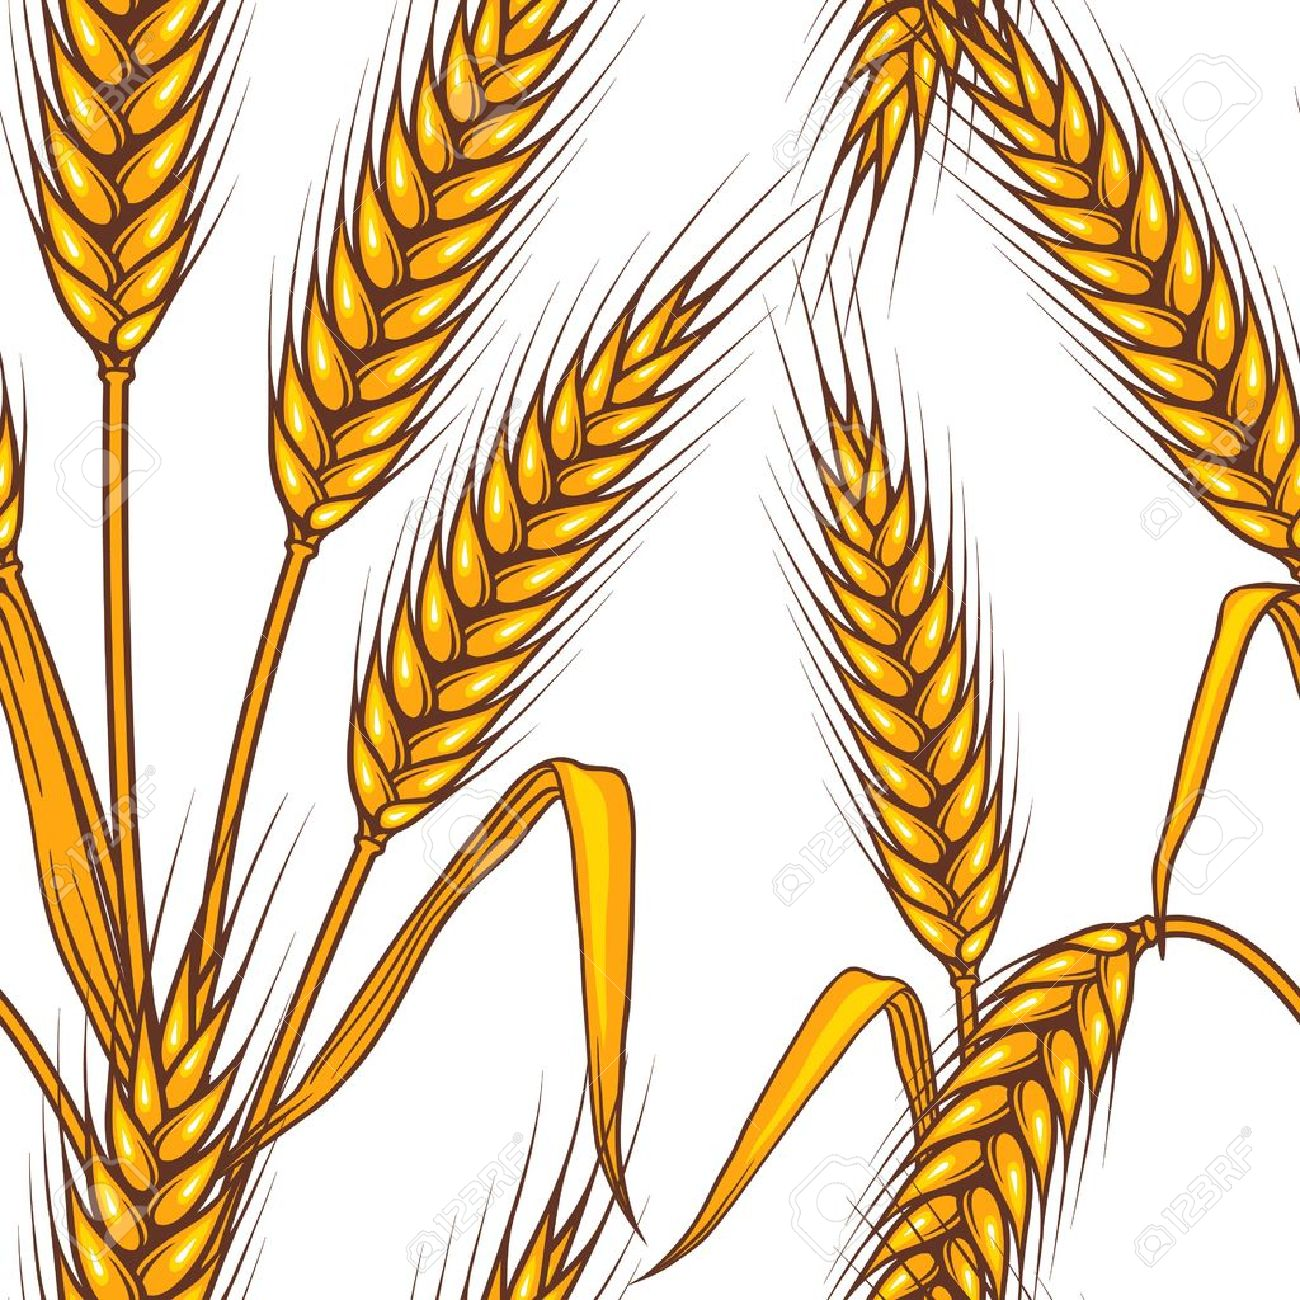 Wheat Field Drawing At Getdrawings